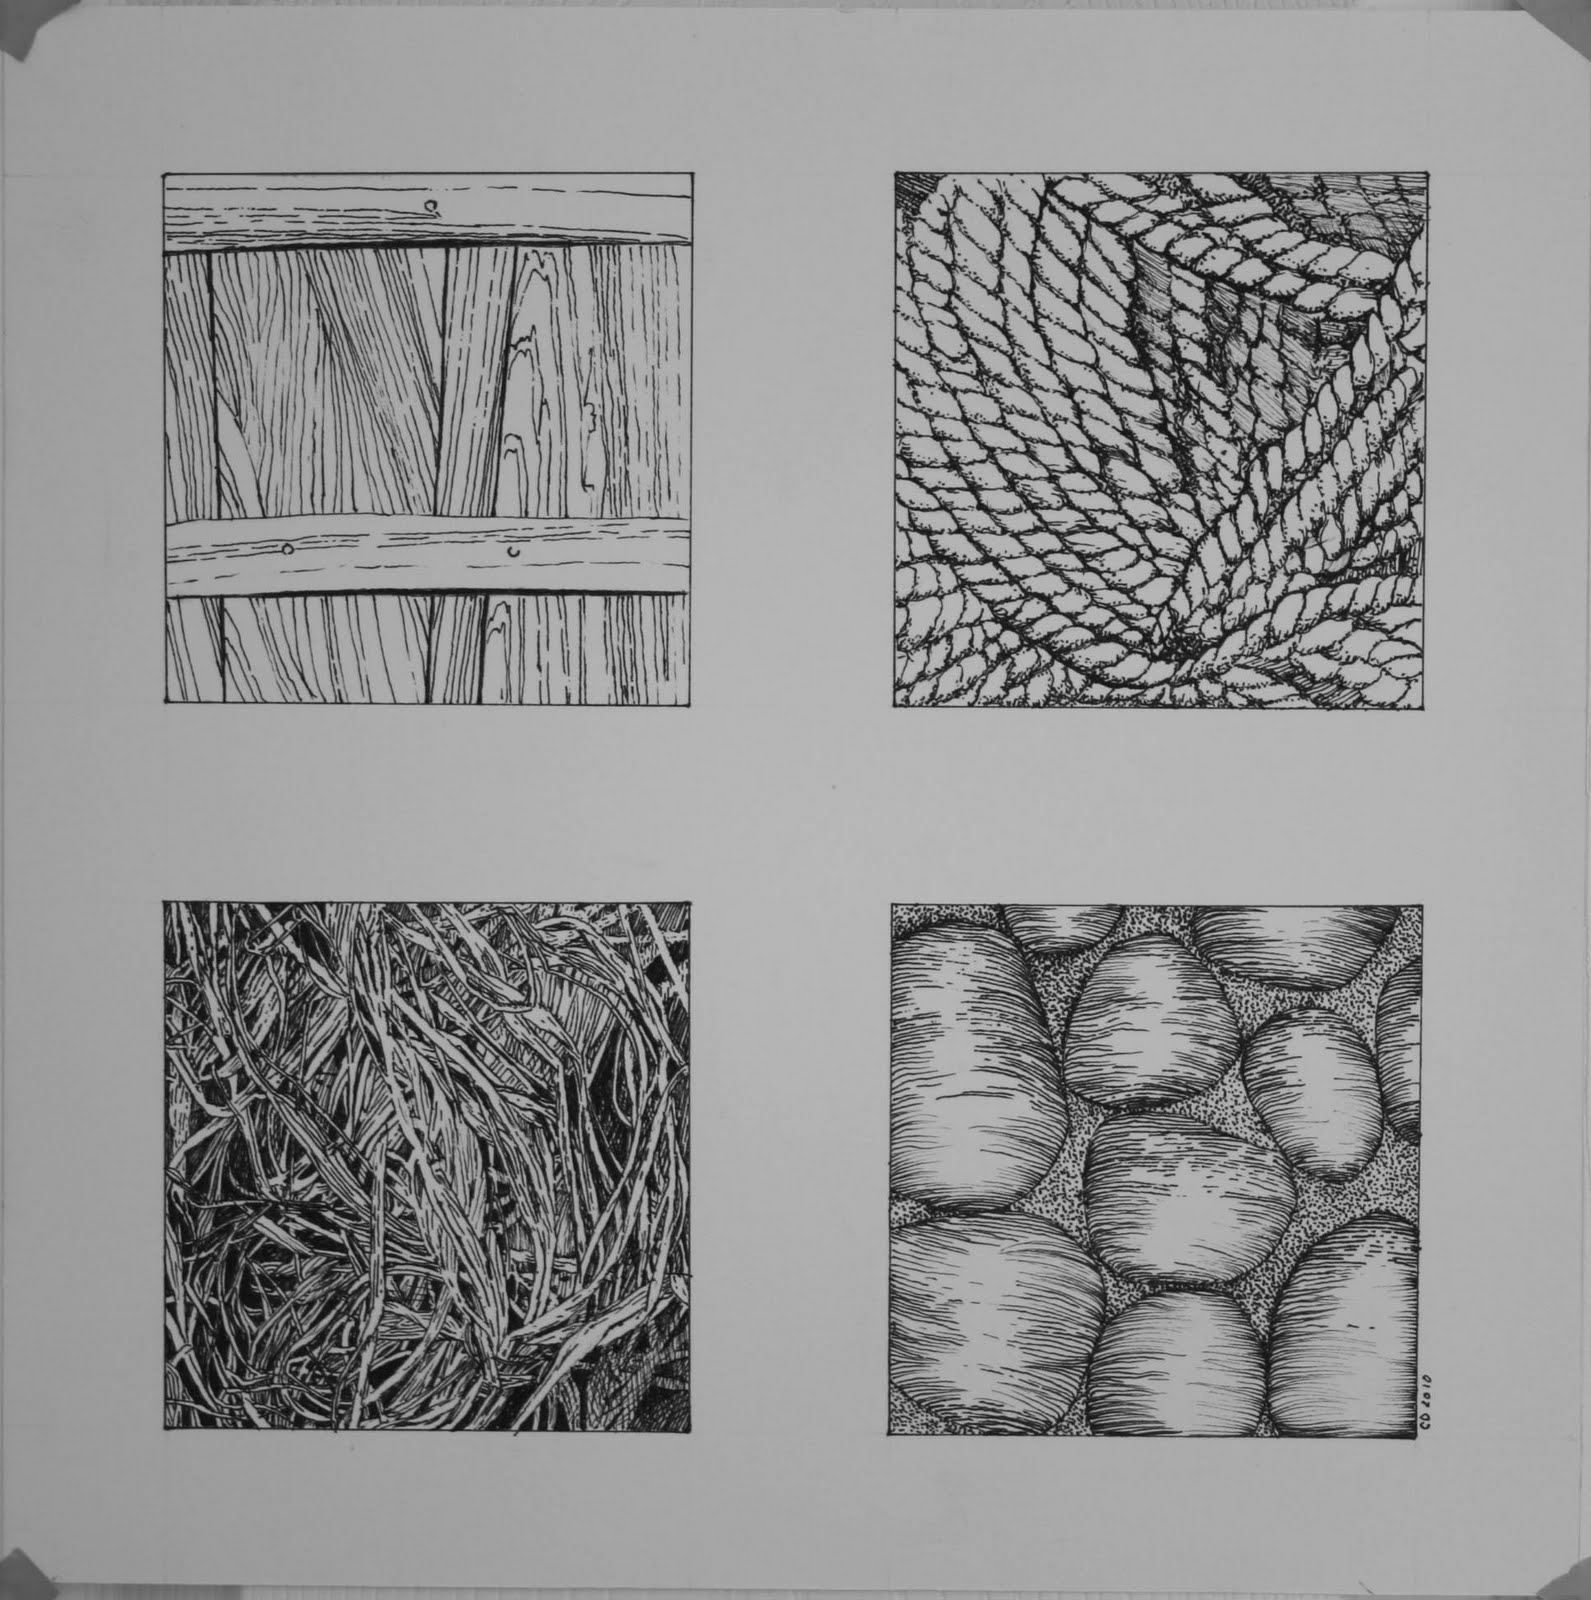 Afferemena Four Textures In Pen And Ink